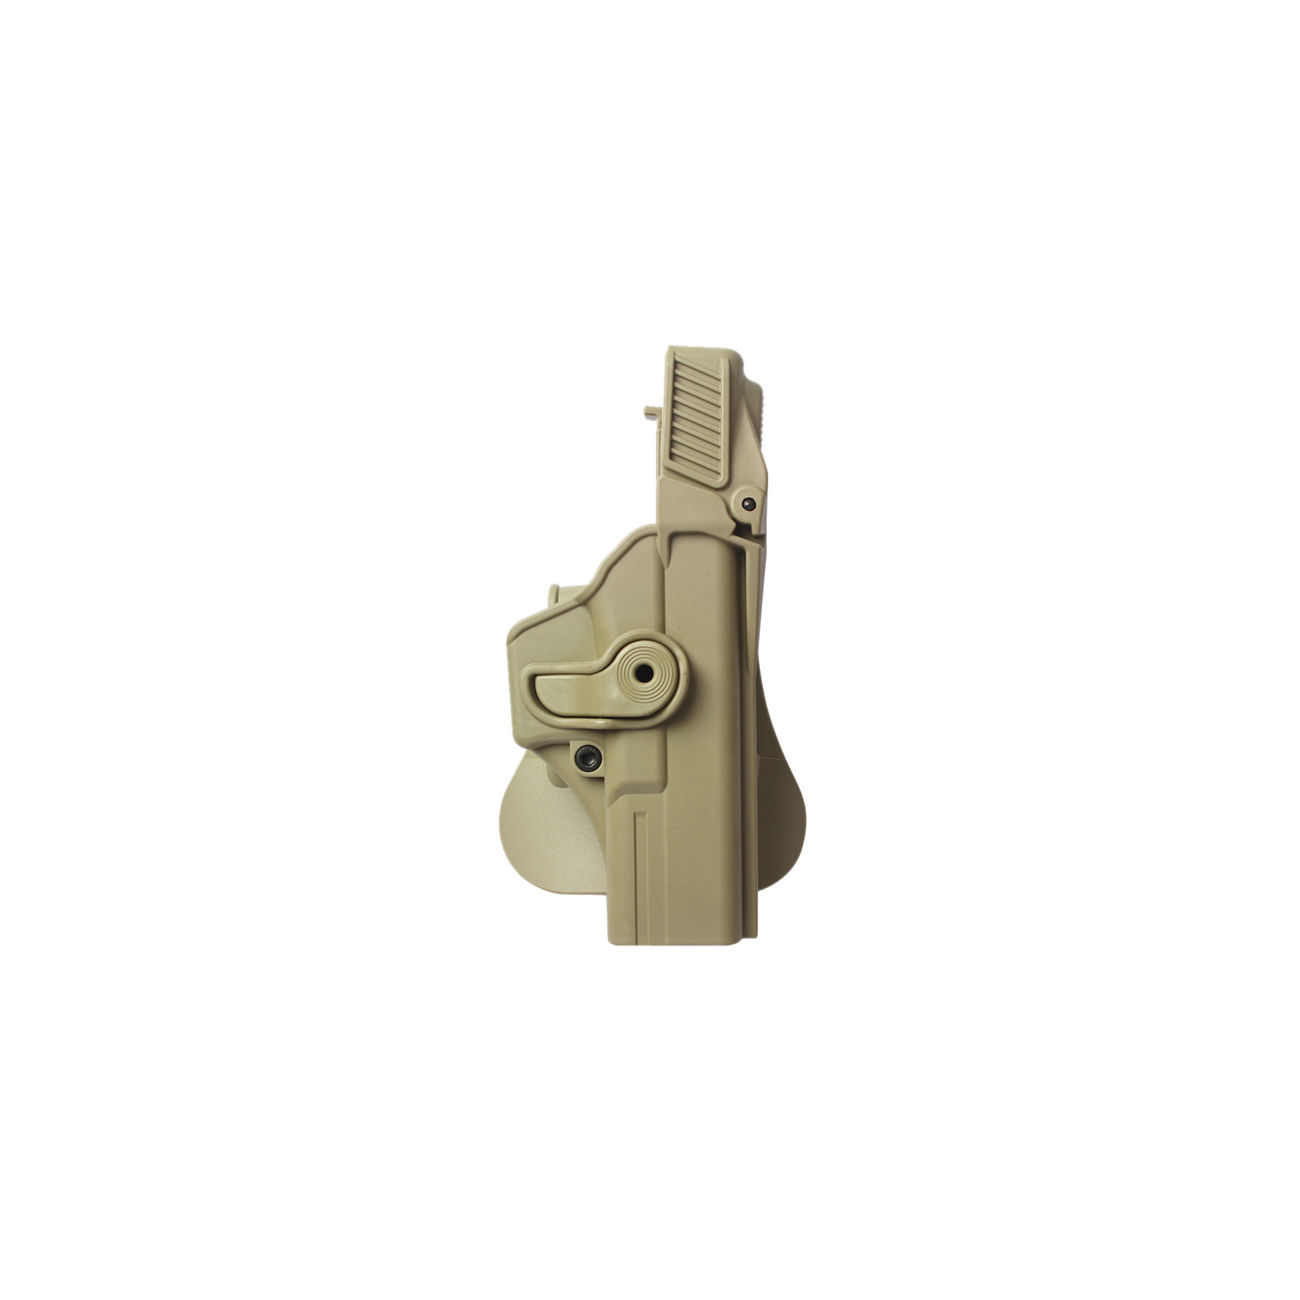 IMI Defense Level 3 Holster Kunststoff Paddle für G17/22/31 tan 0